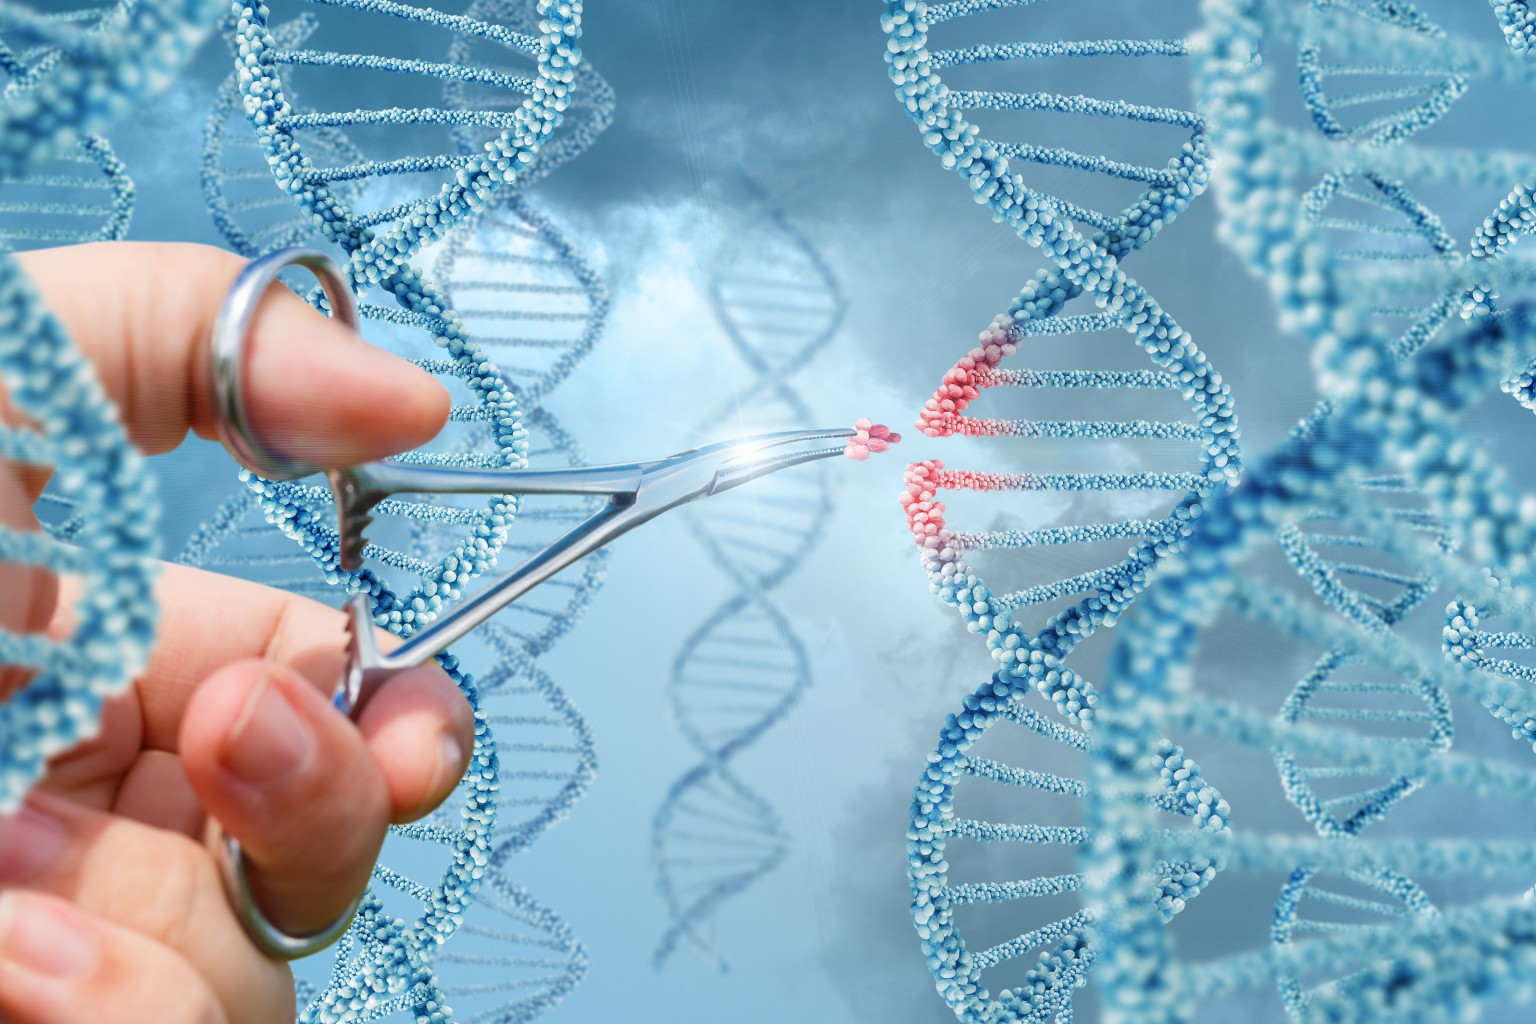 Licensing Opportunities Abound For CRISPR Gene-Editing Technology